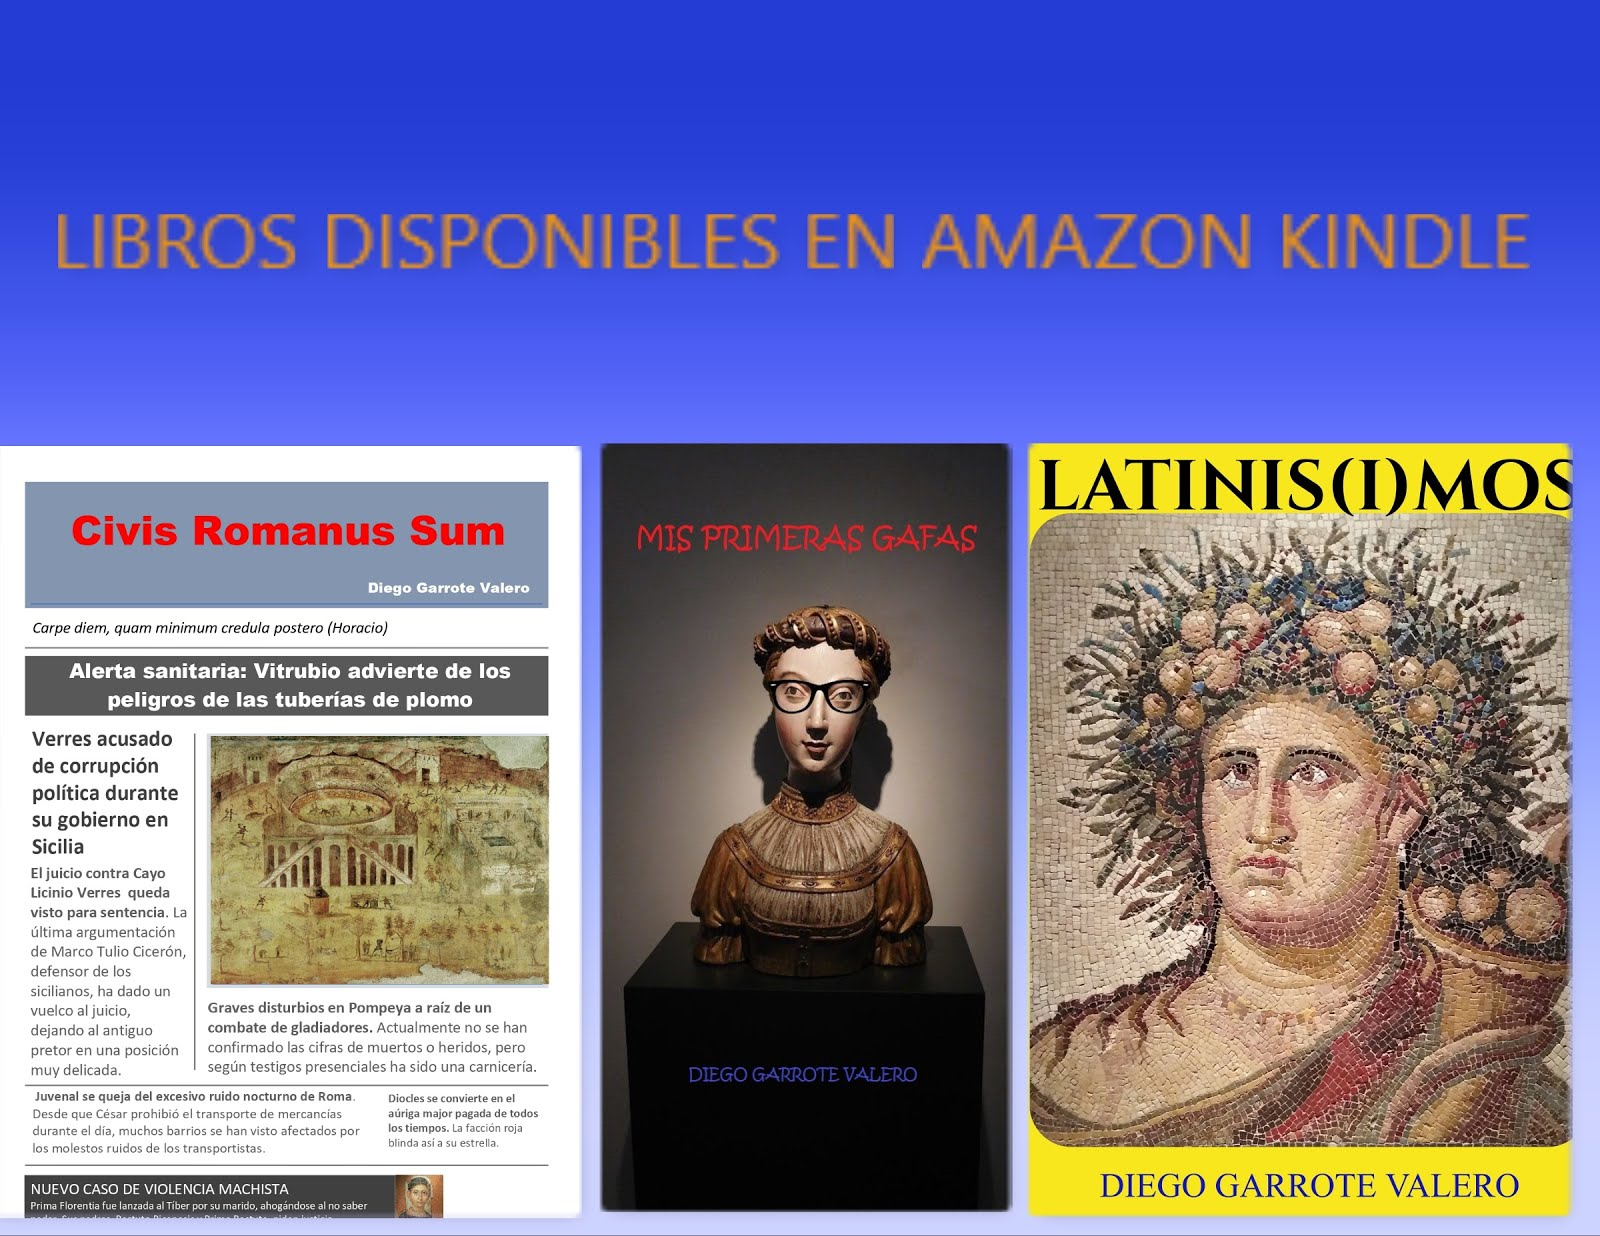 LIBROS EN AMAZON KINDLE